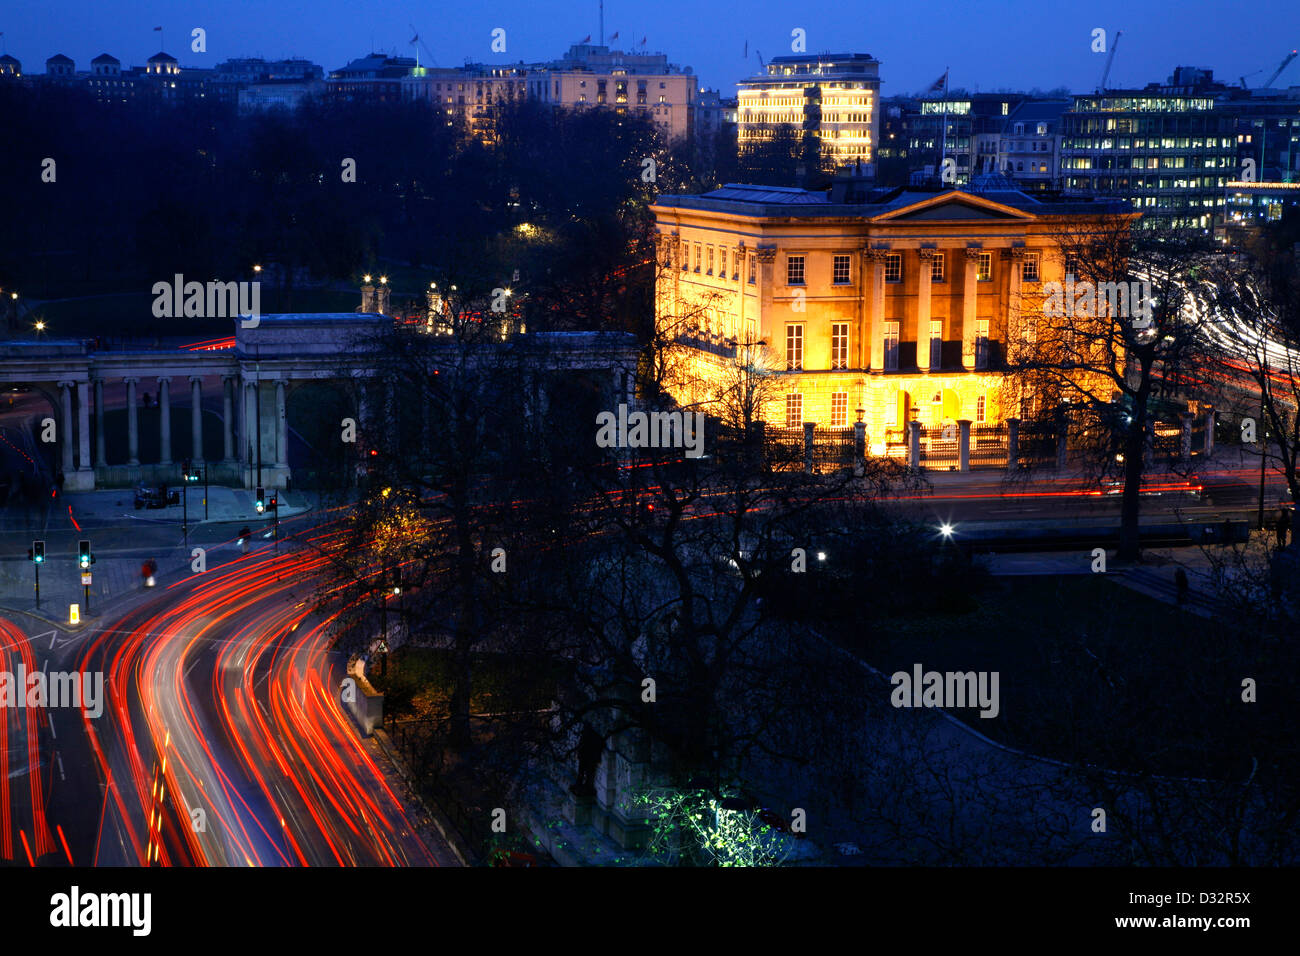 Apsley House and Hyde Park Screen on Hyde Park Corner, London, UK - Stock Image